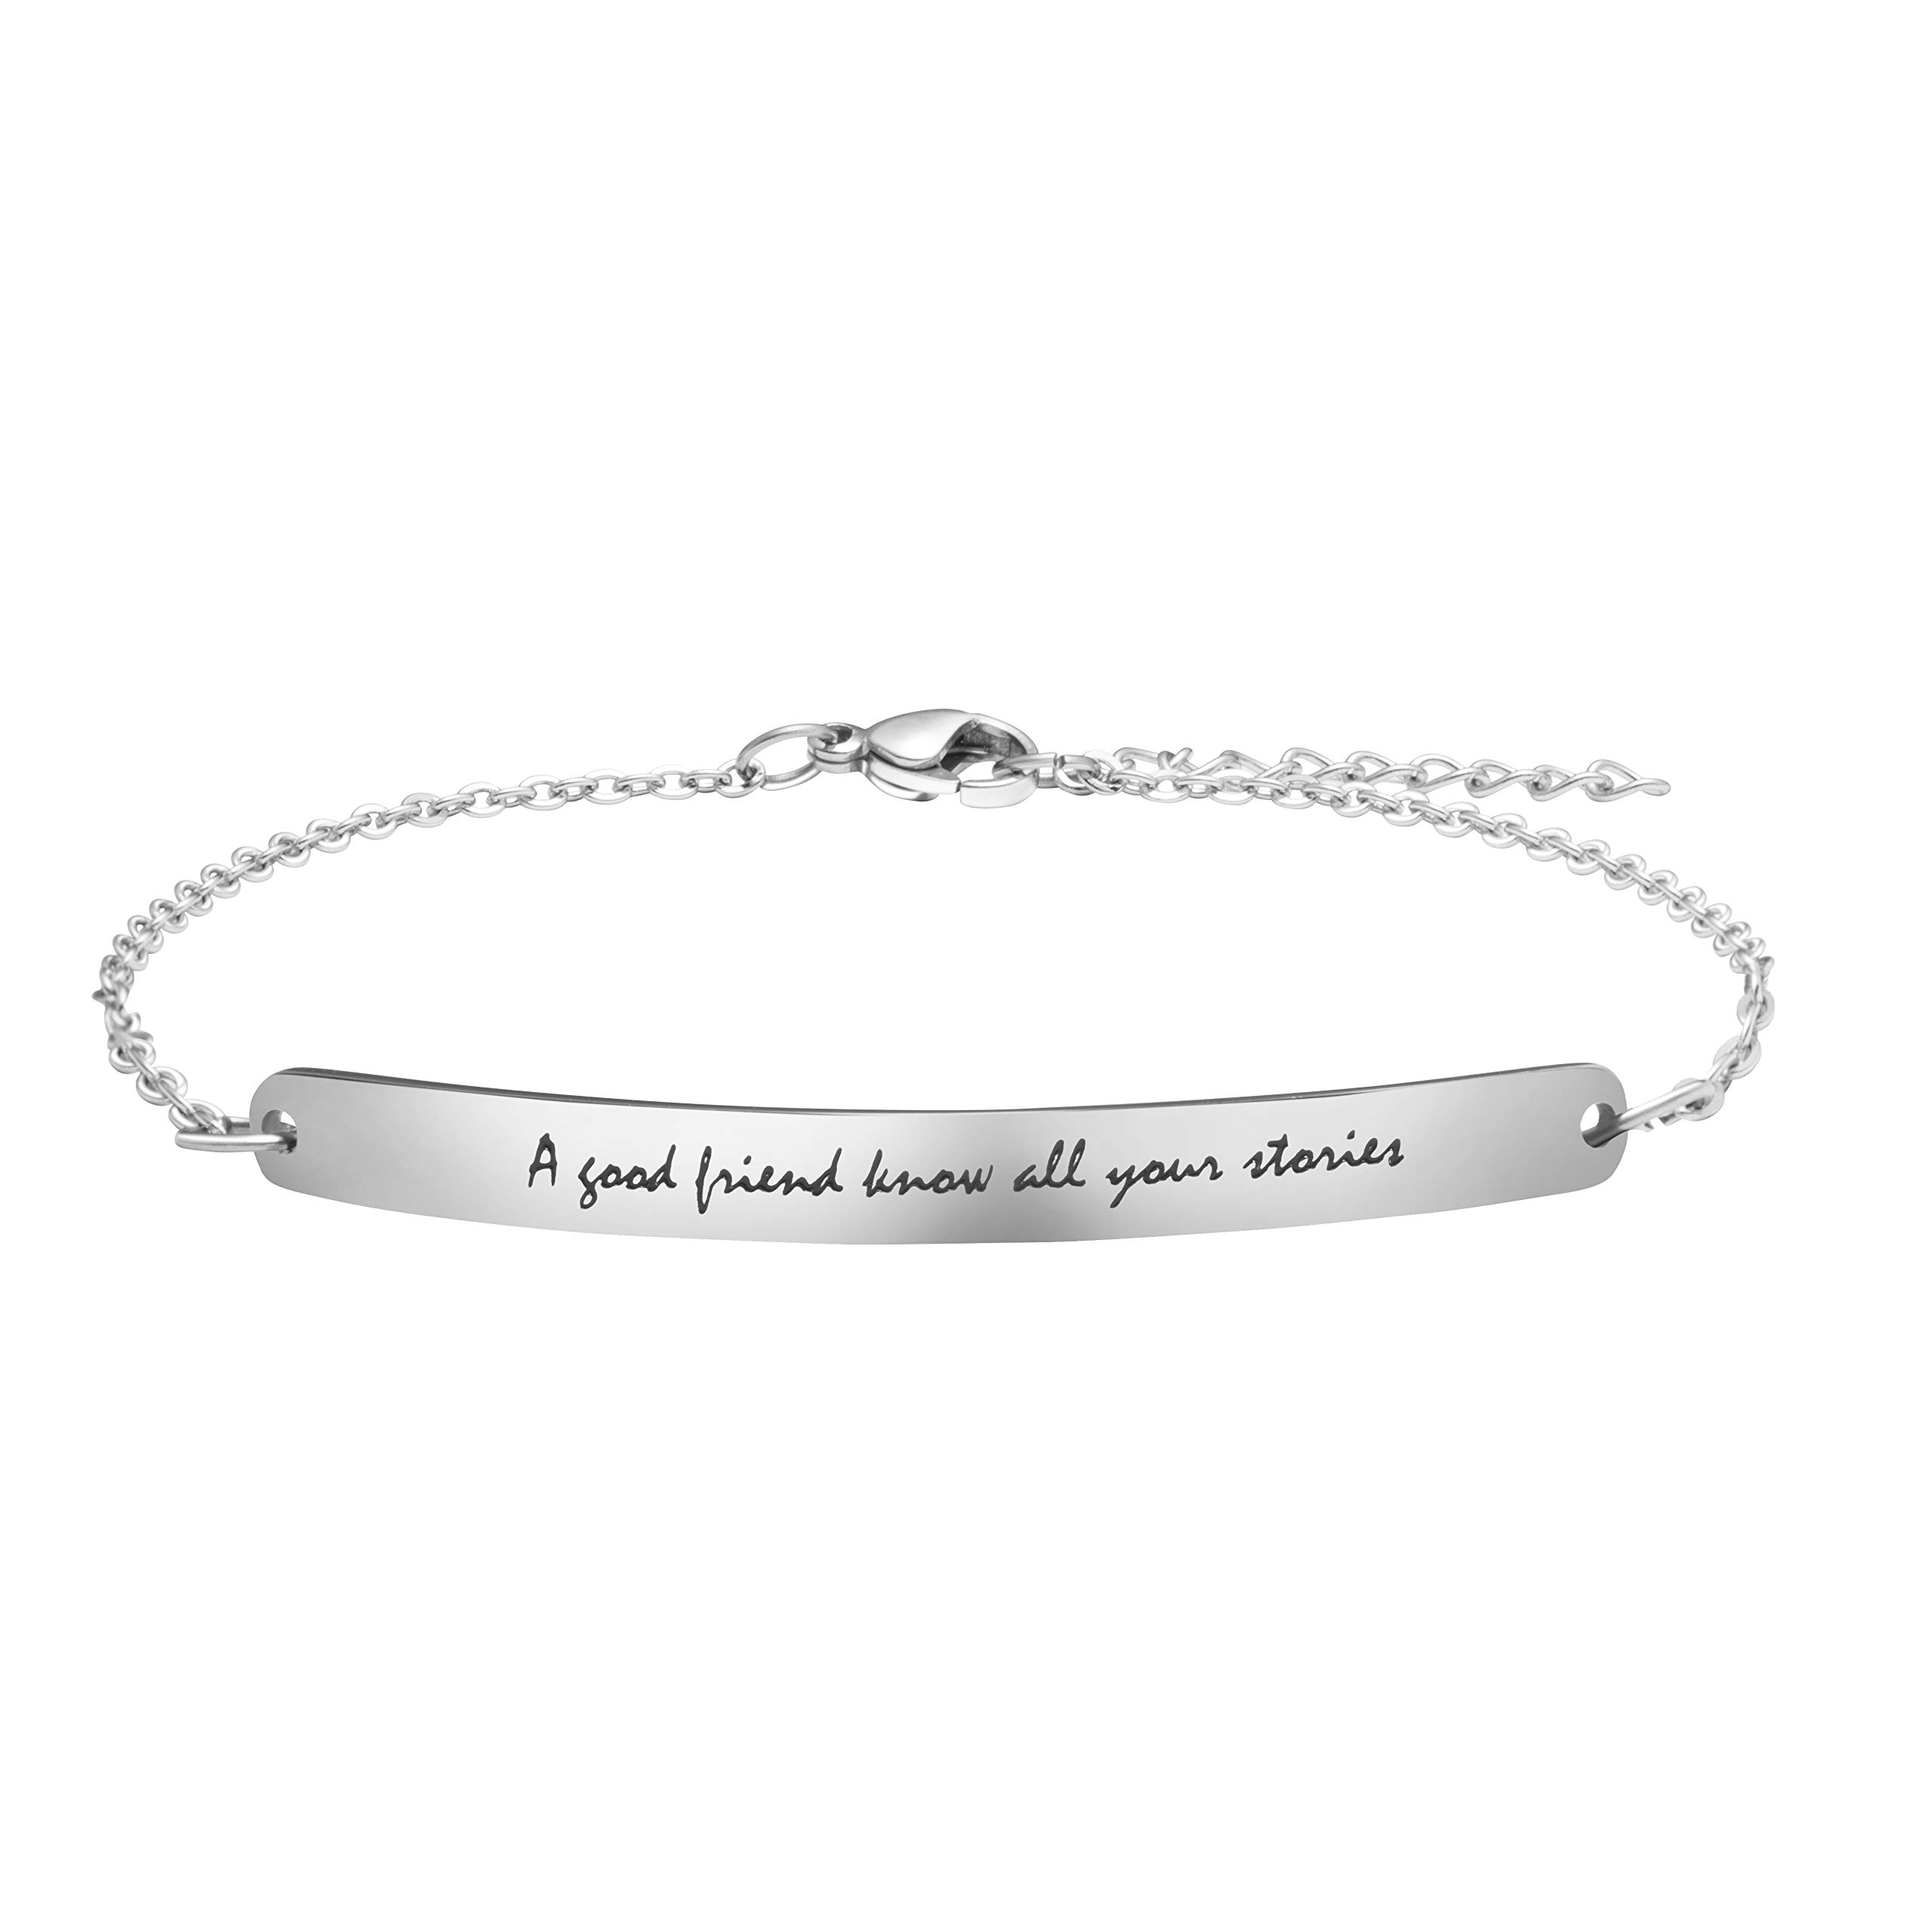 Joycuff Friendship Bracelets for Women Birthday Encouragement Jewelry for Friends Engraved A Good Friend Know All Your Stories